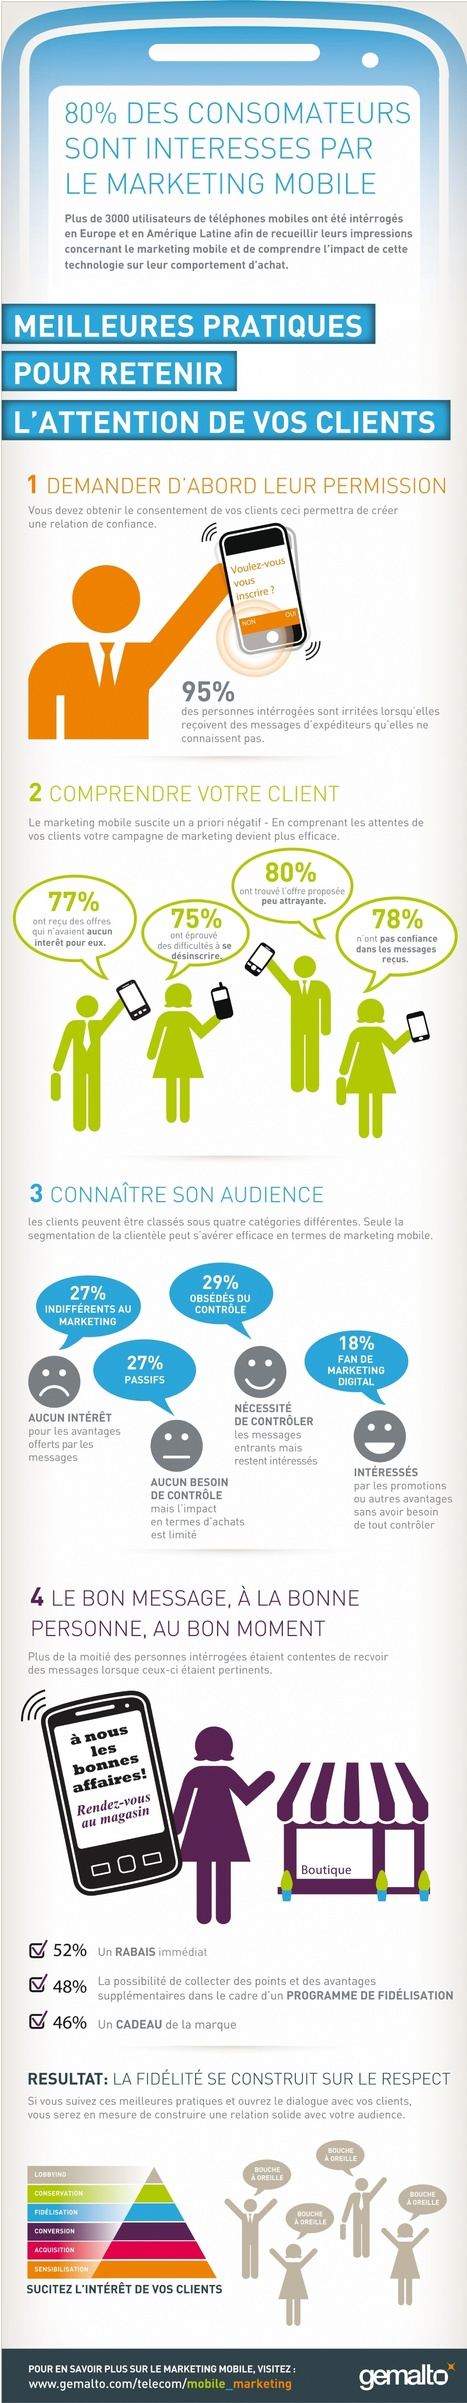 Infographie : Les bonnes pratiques du marketing mobile | marketing tendances | Scoop.it